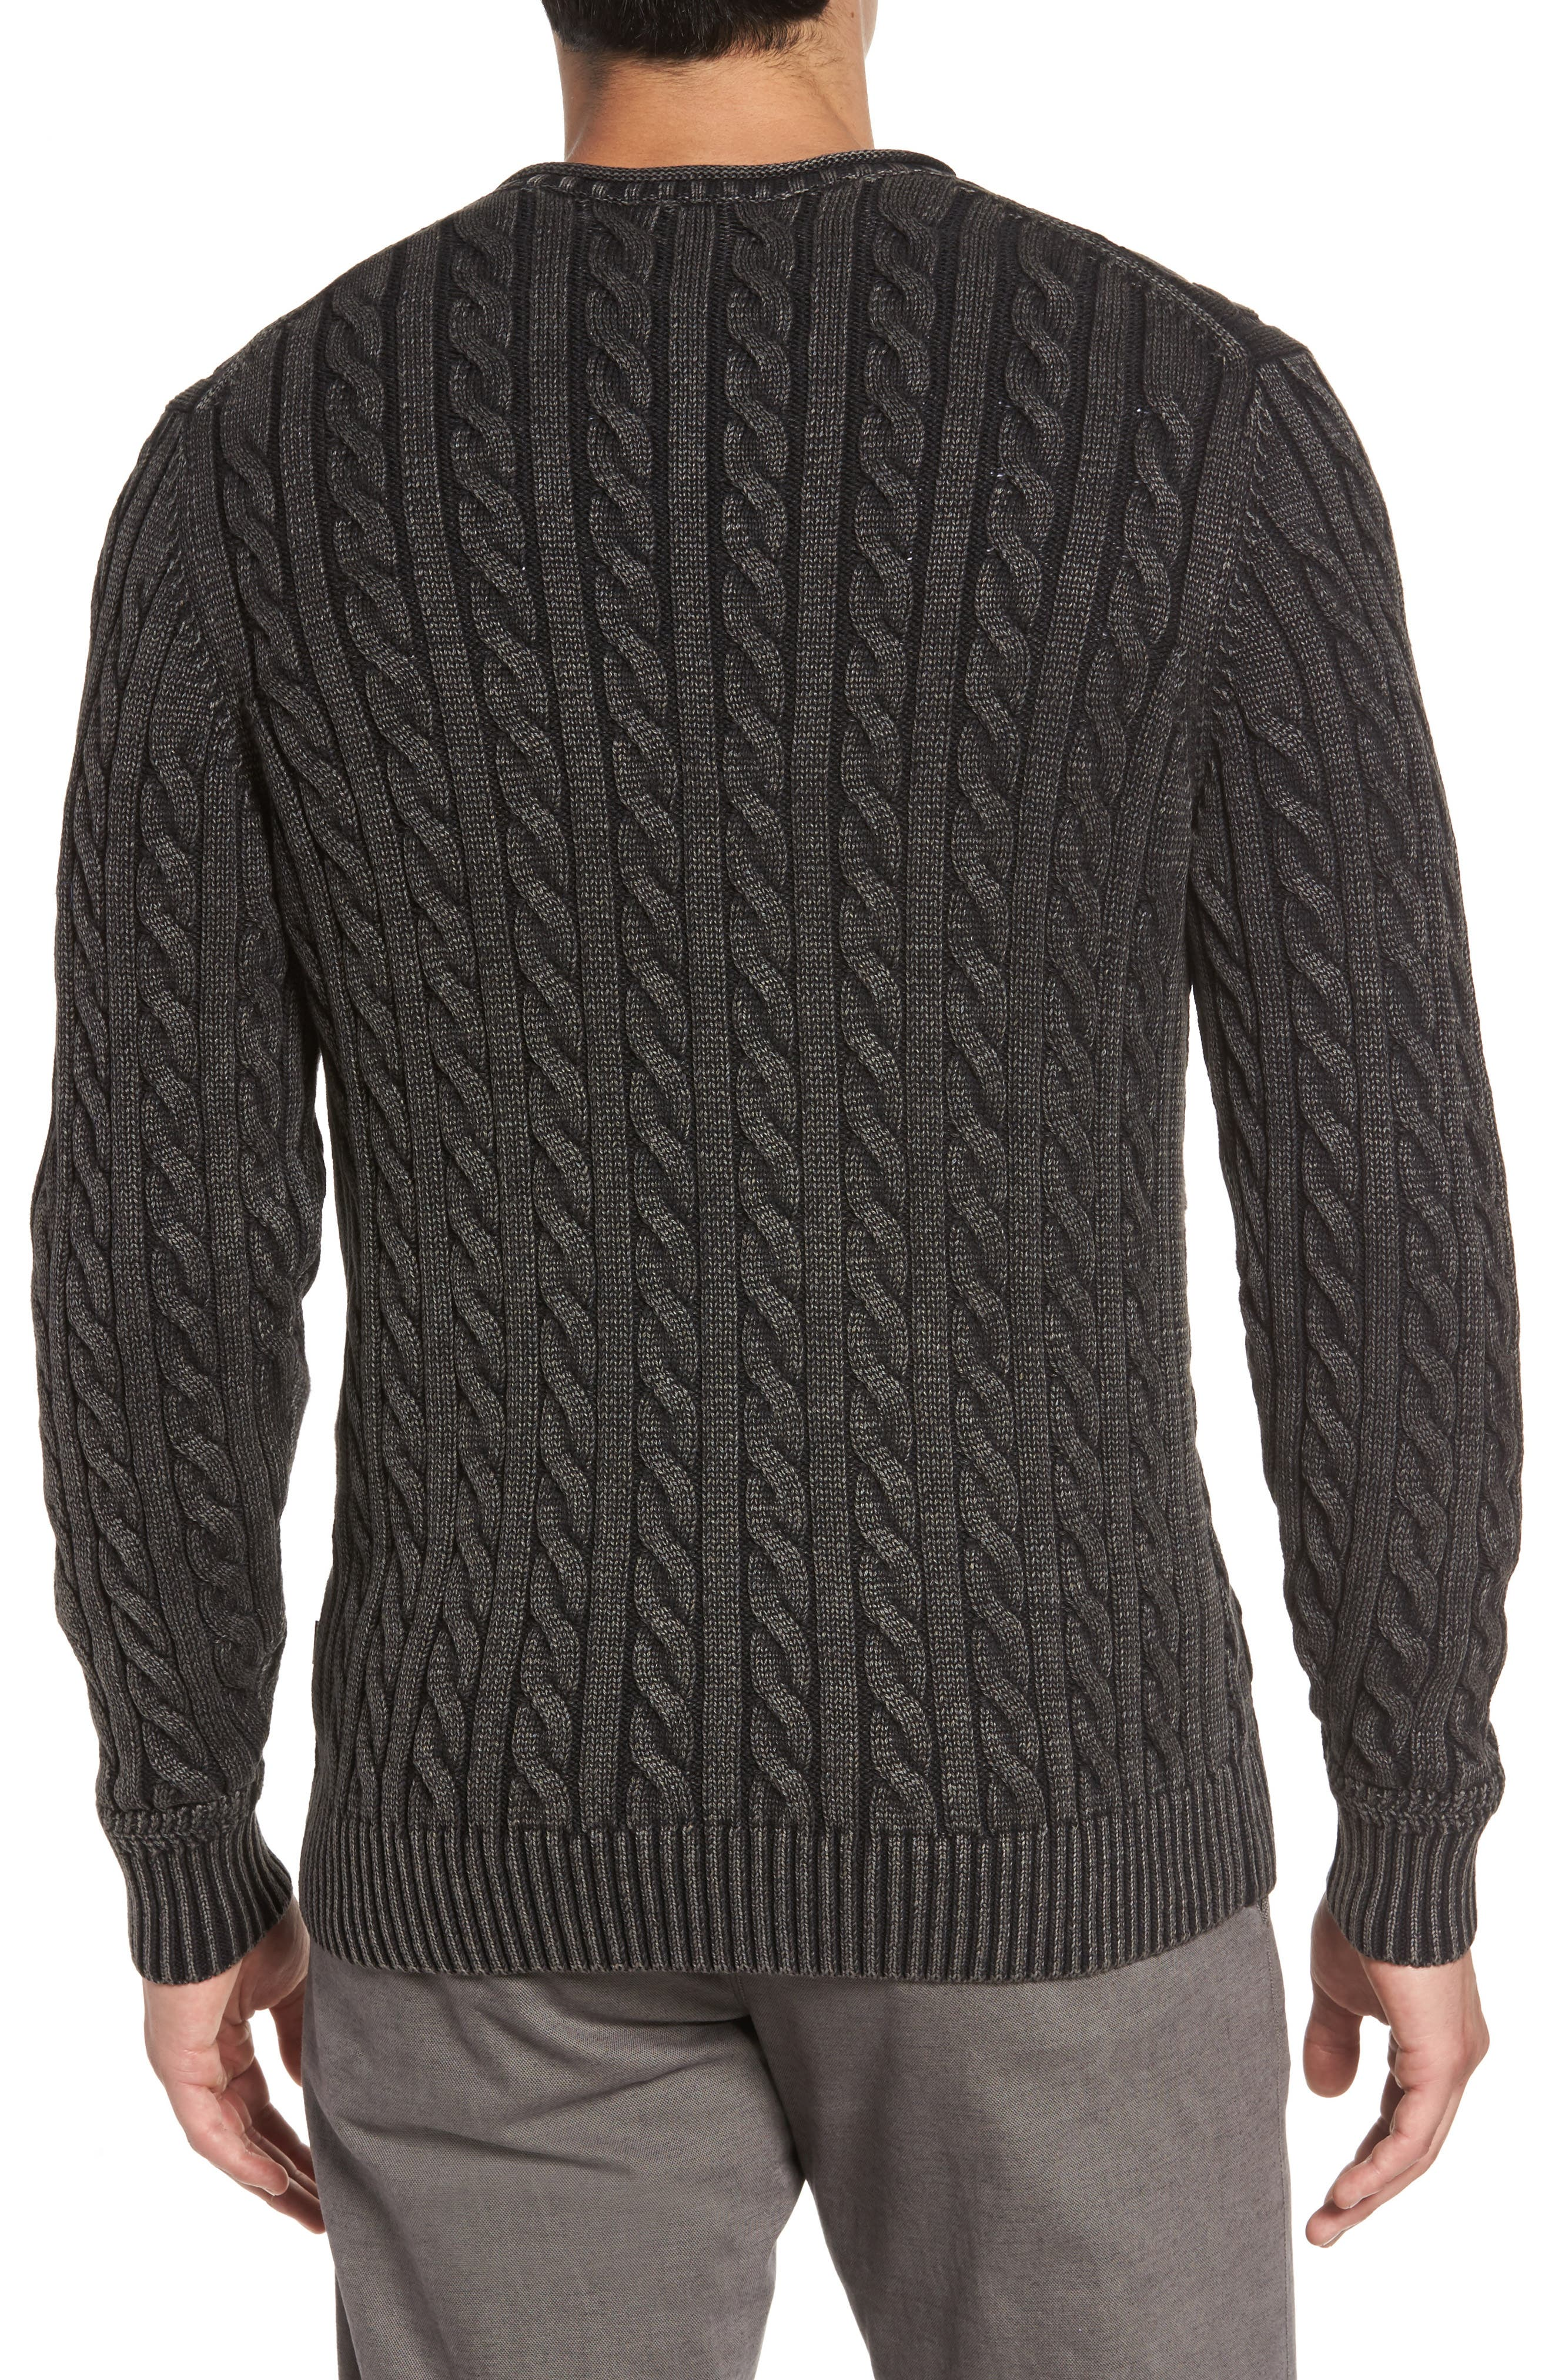 Landray Cable Knit Cotton Sweater,                             Alternate thumbnail 2, color,                             021